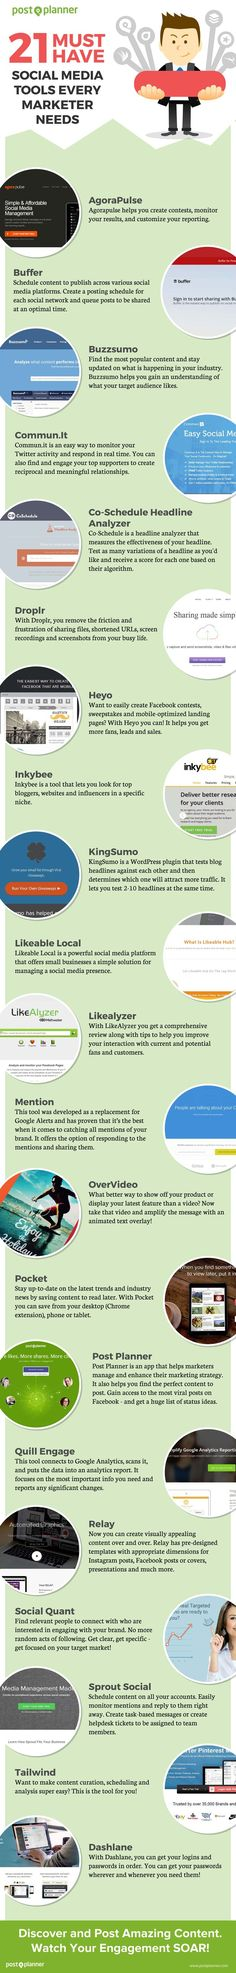 "SOCIAL MEDIA - ""21 Must-Have Social Media Tools for Brainy Marketers (like You?)"